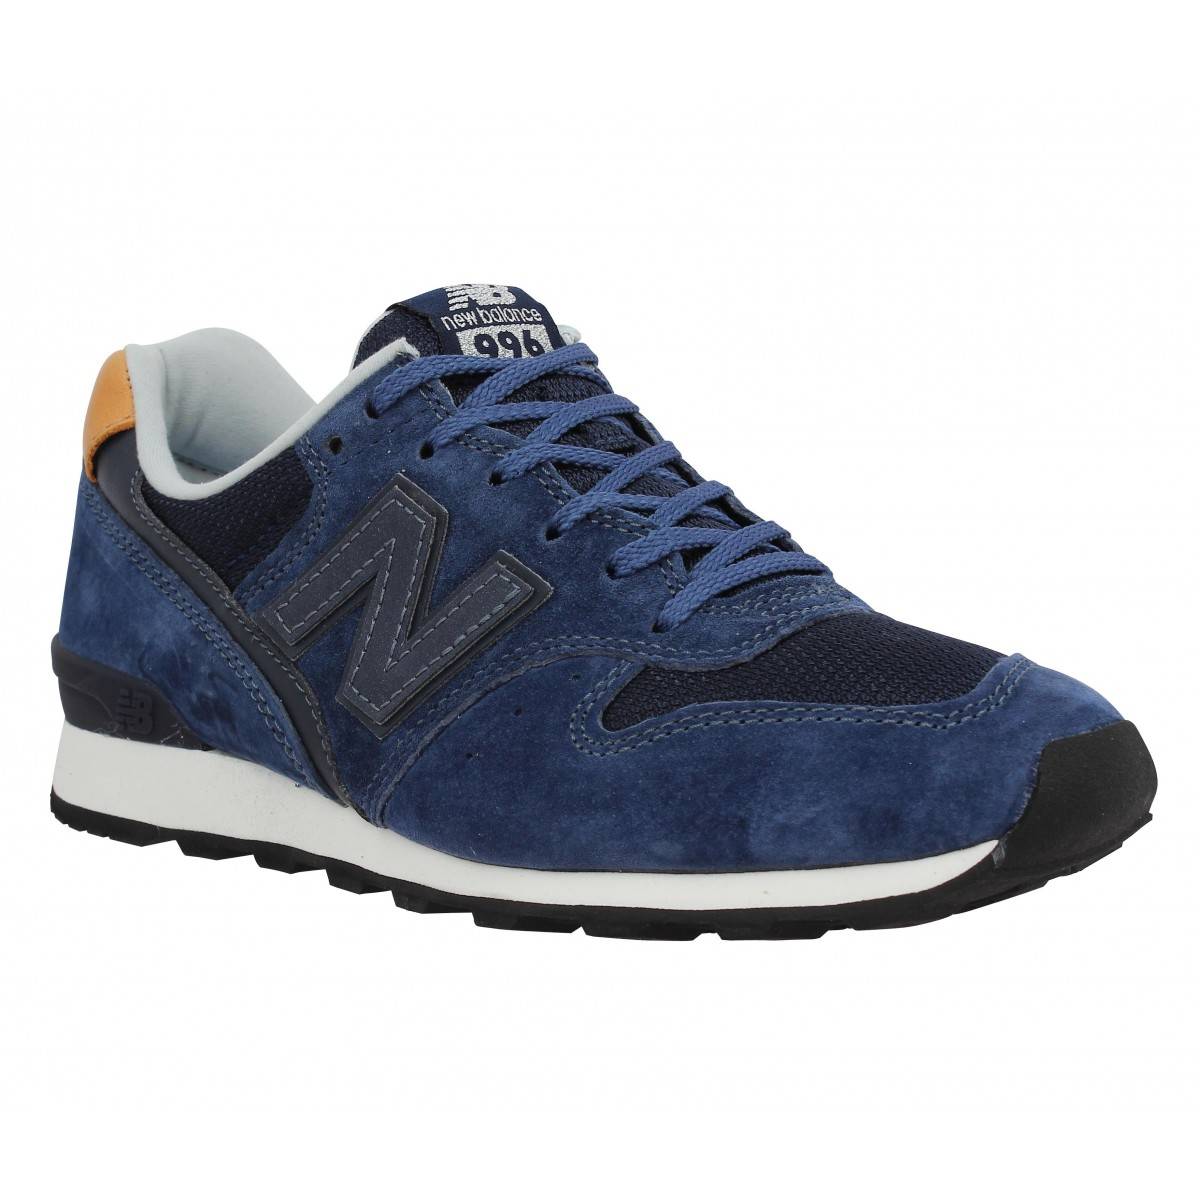 Baskets NEW BALANCE 996 velours + toile Femme Navy